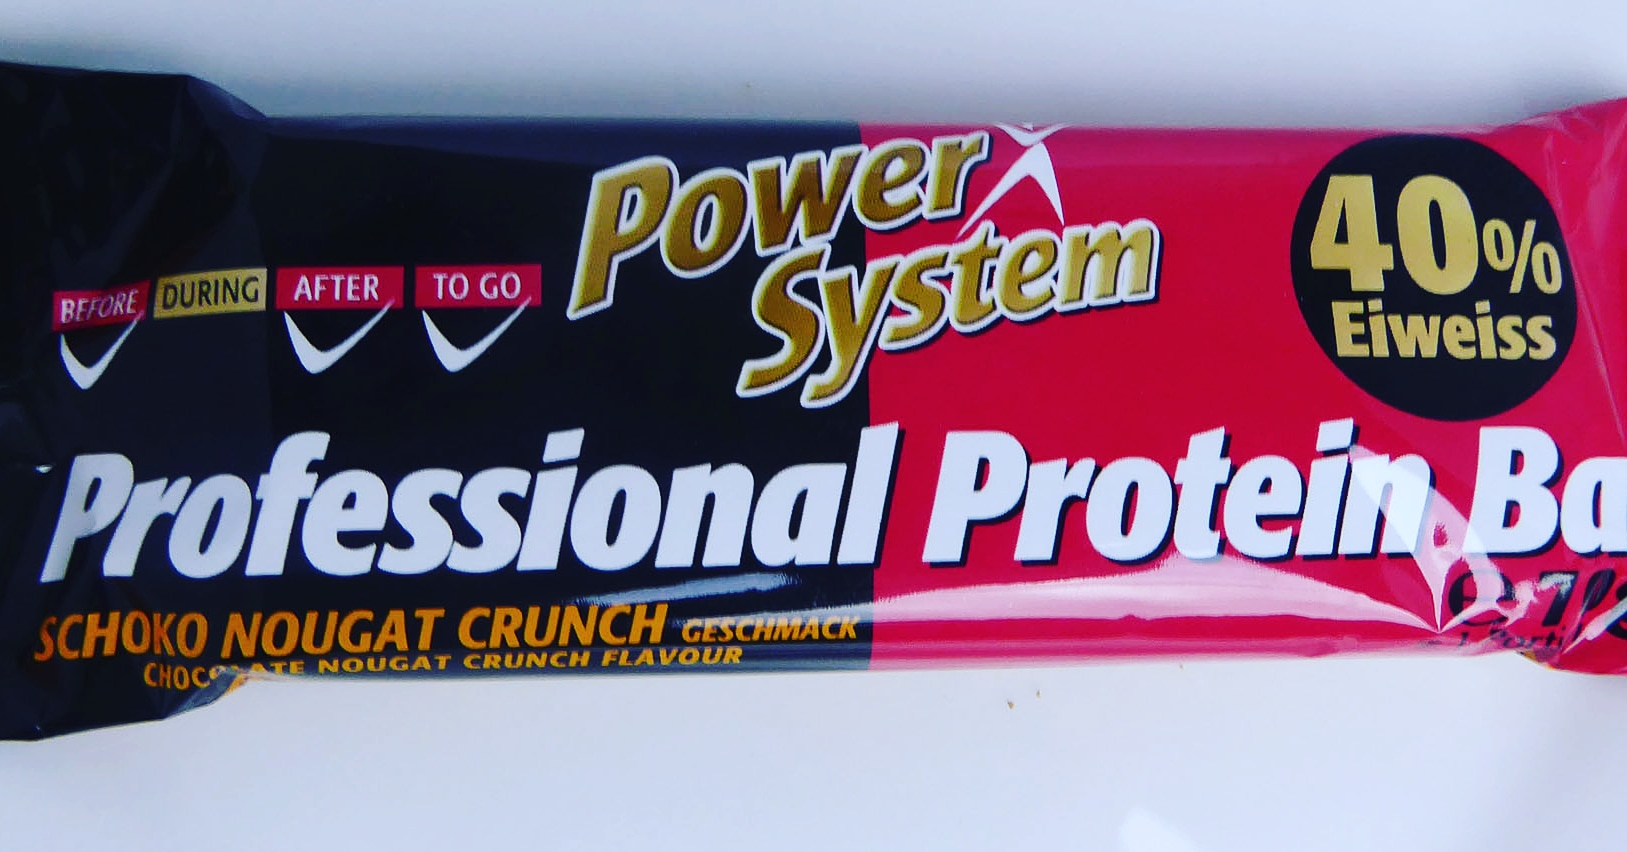 Power System Professional Protein Bar Schoko Nougat Crunch